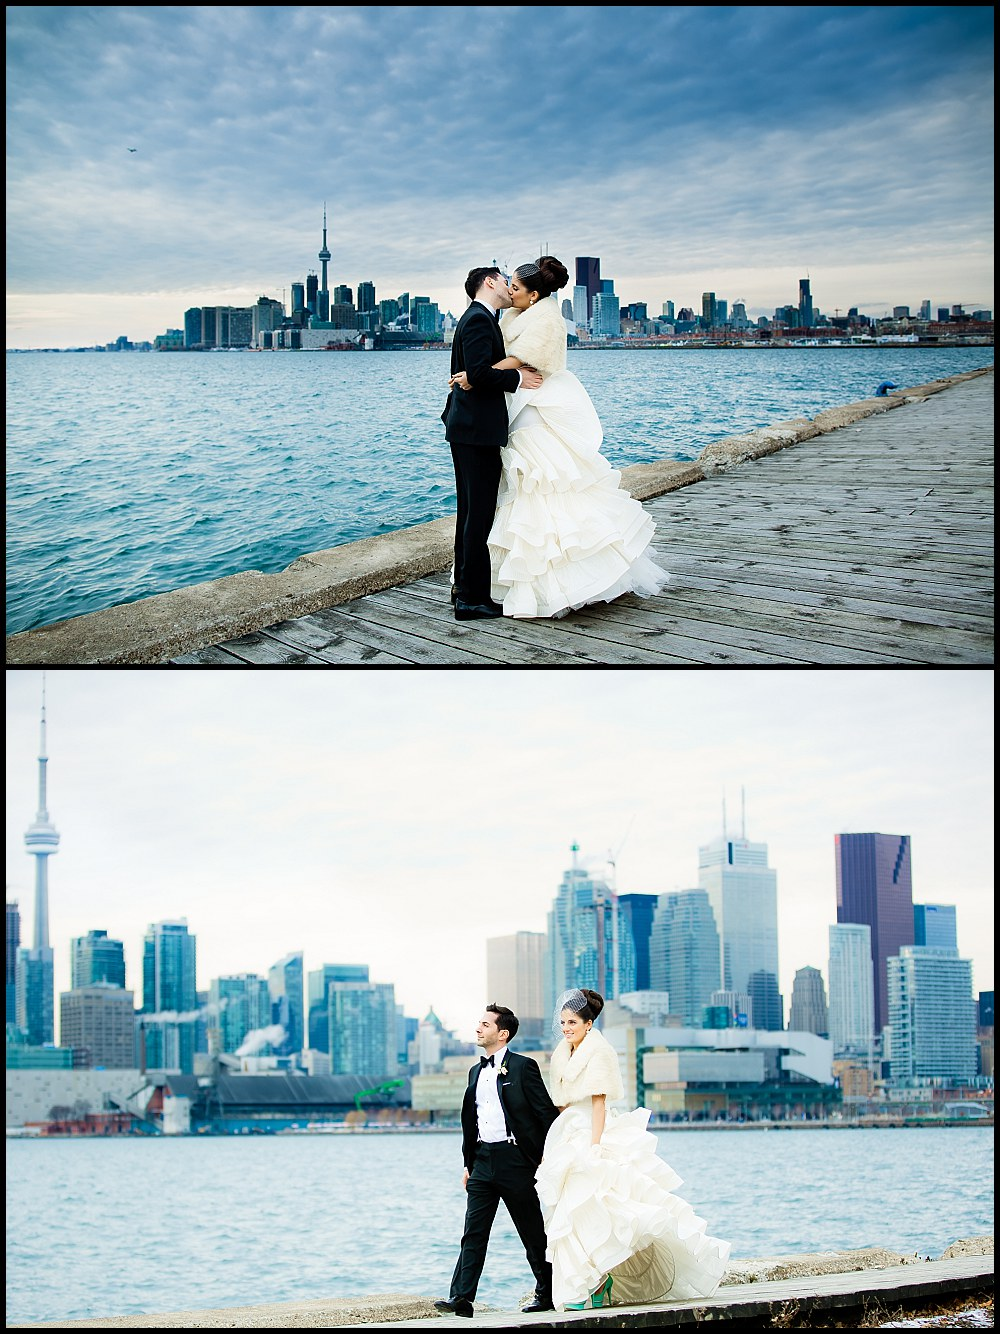 Toronto winter wedding photos